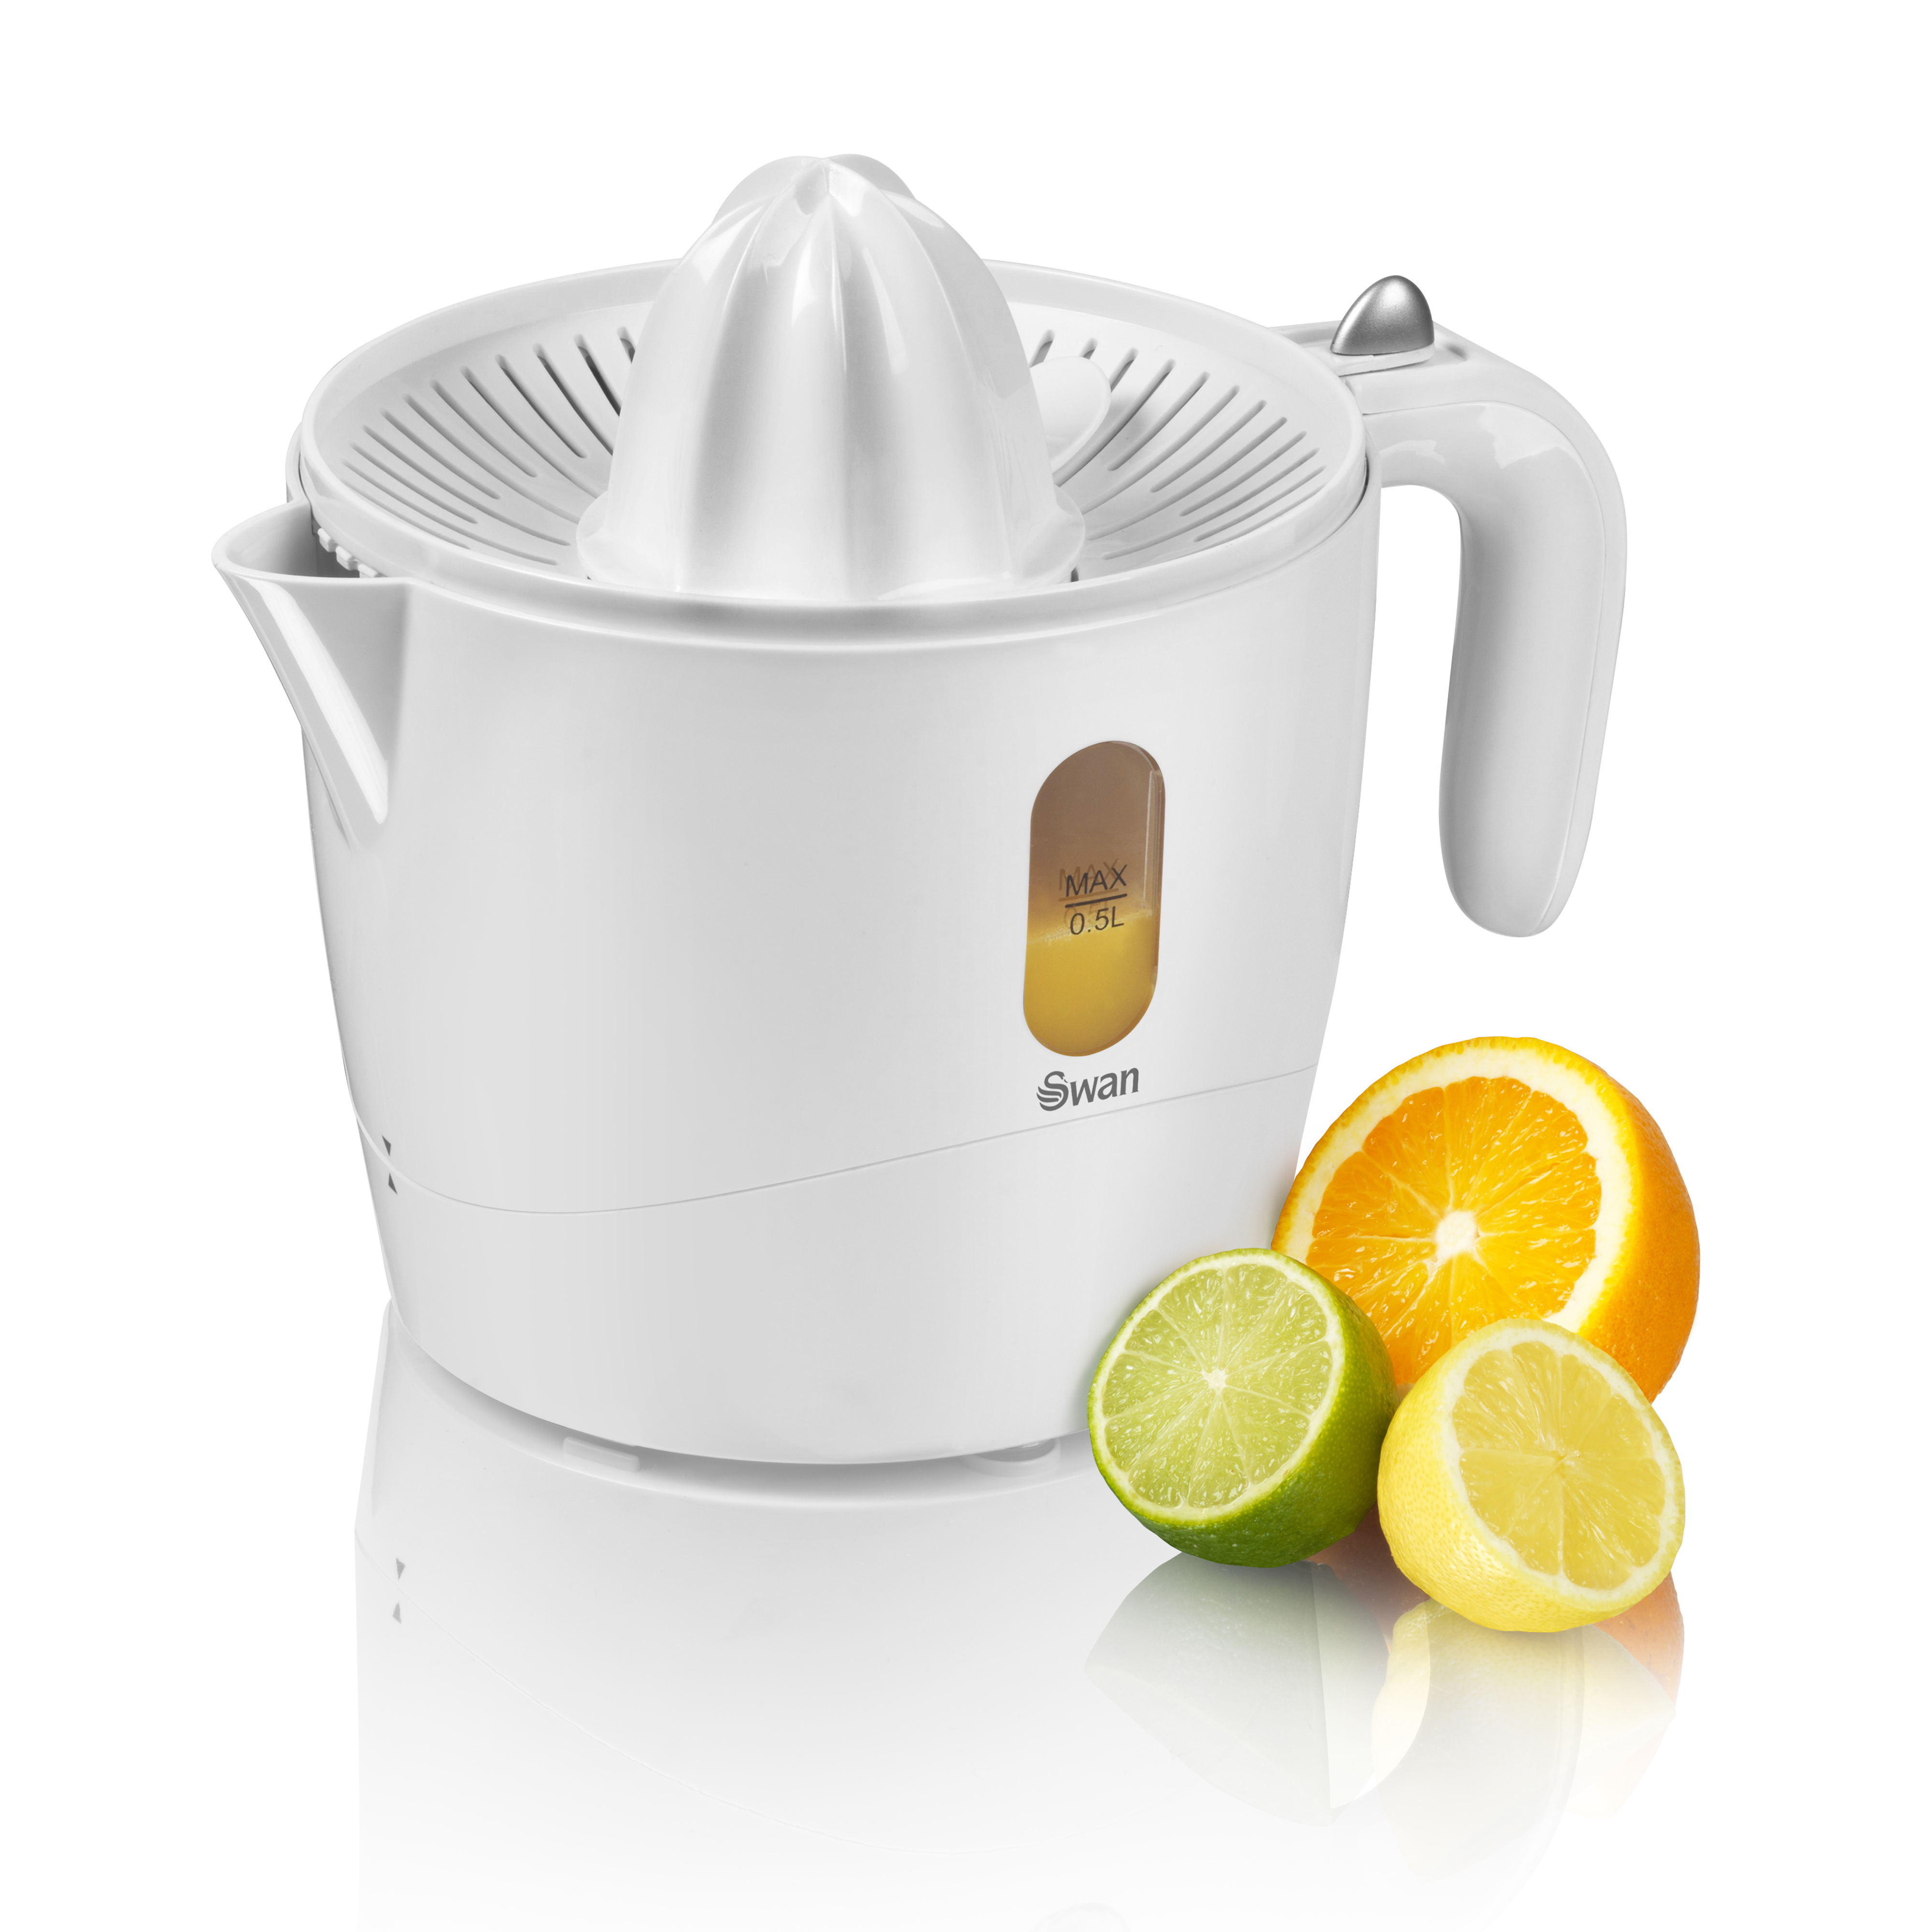 Swan 500Ml Citrus Press - White No Colour